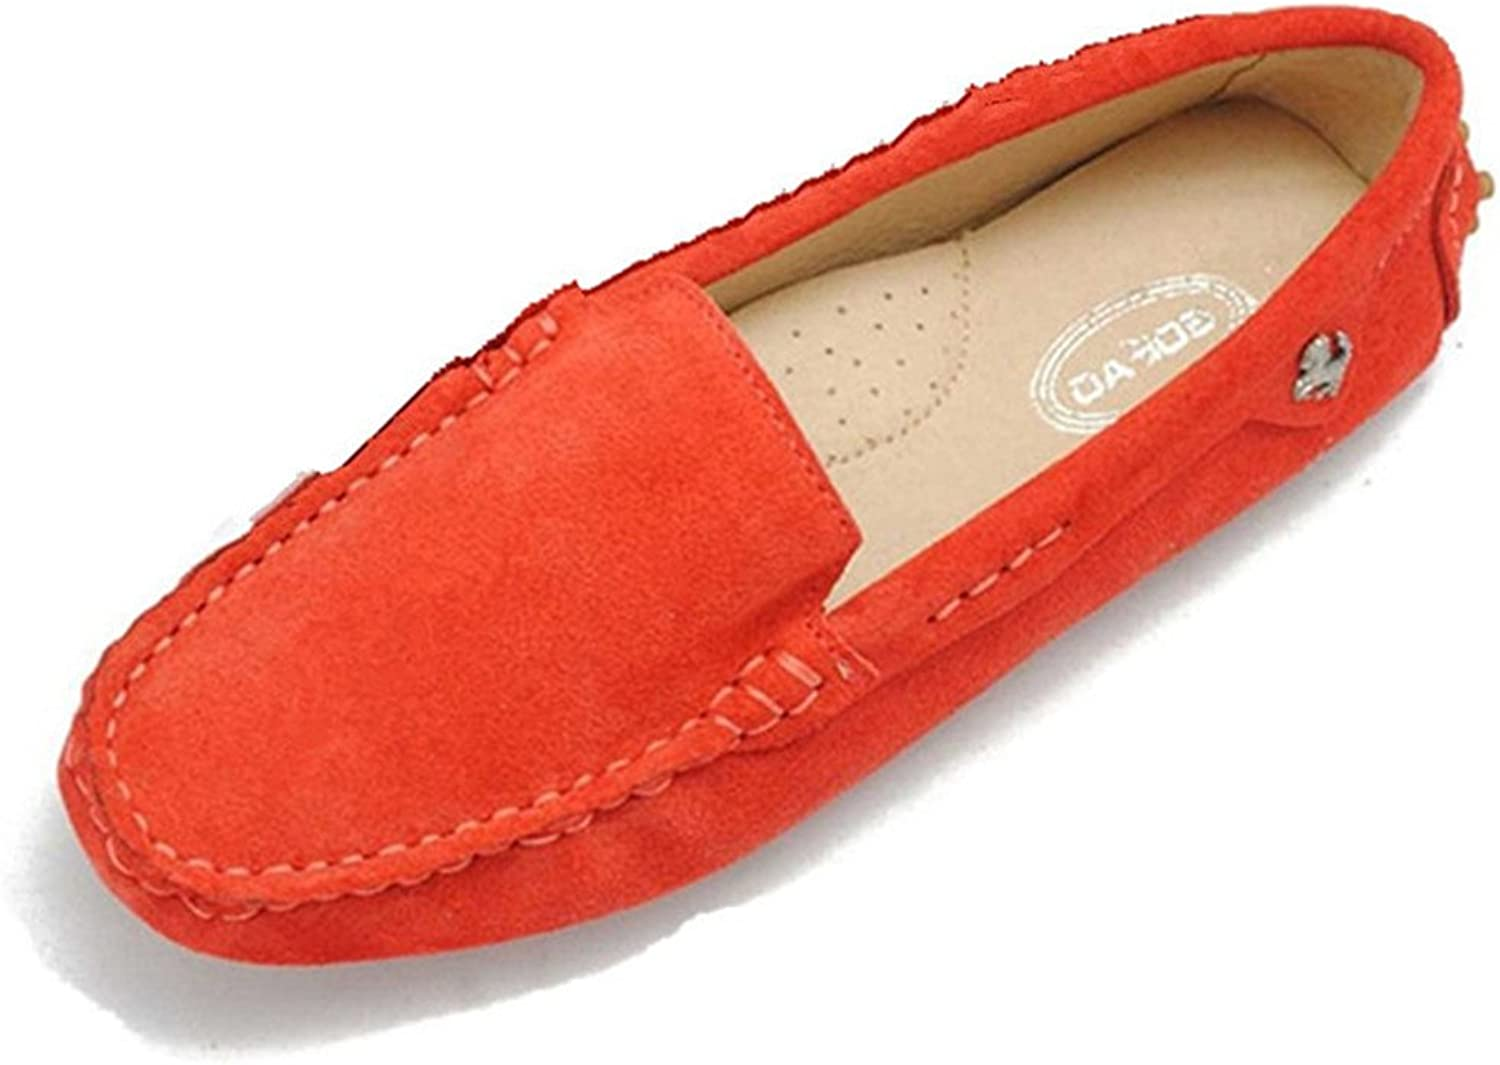 Goeao Women Casual Comfortable Basic Suede Leather Driving Moccasins Flats Slip-Ons Boat Loafers